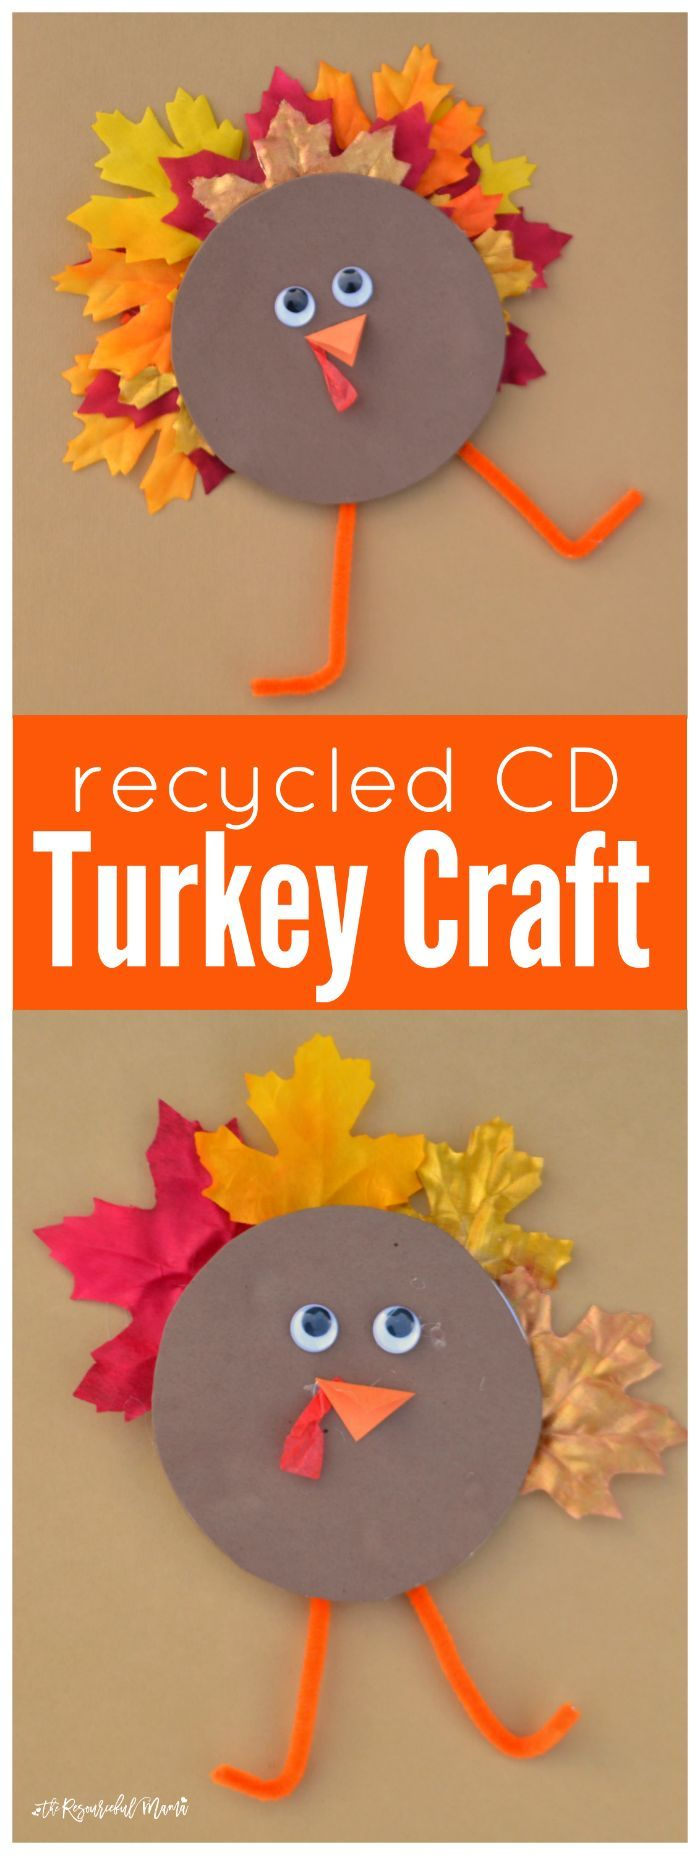 Recycled CD Turkey Kid Craft #recycledcd